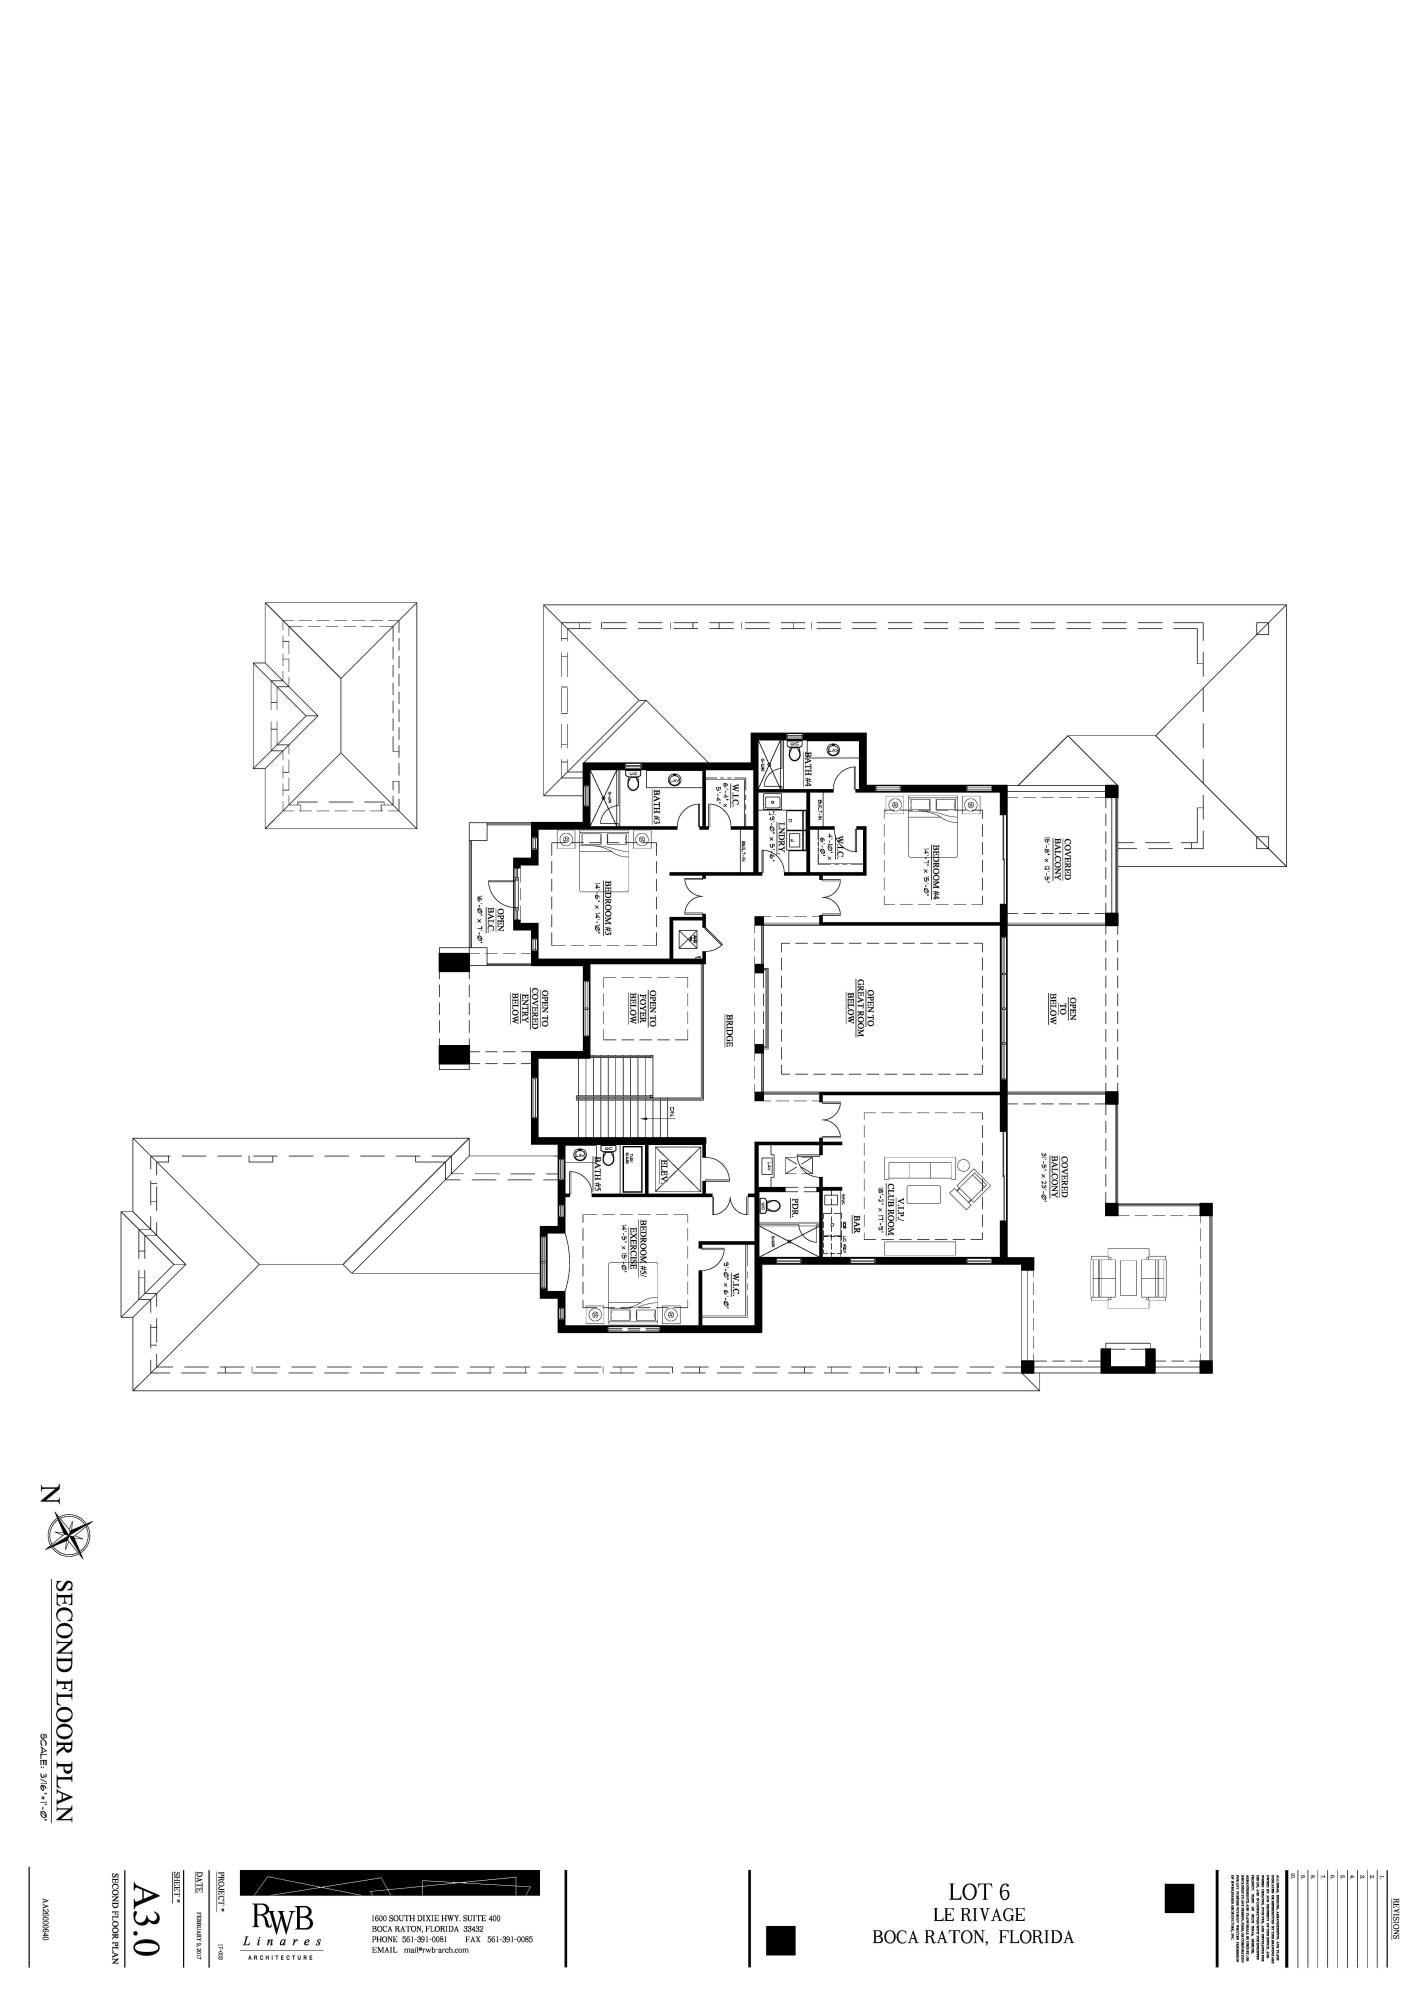 LOT 6 LE RIVAGE - A3.0 Second Floor Plan